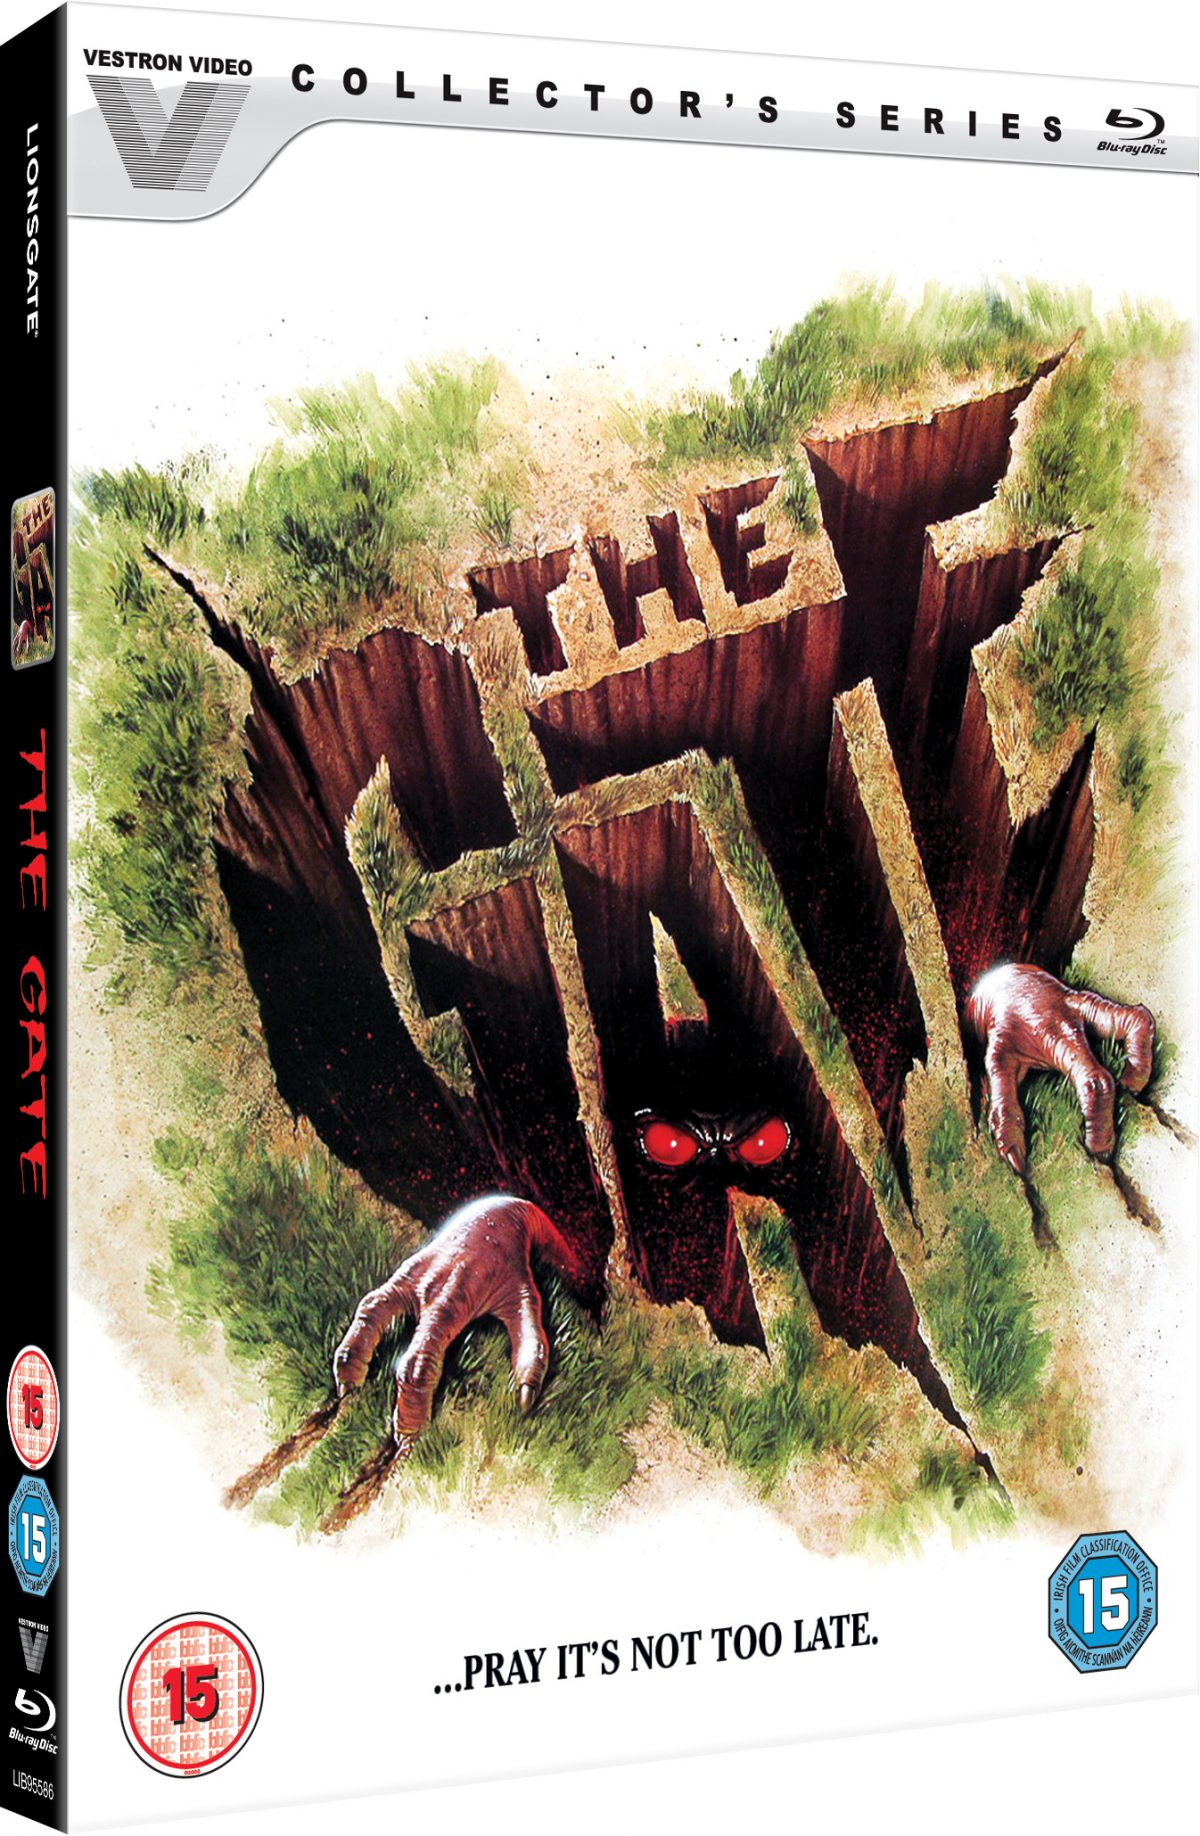 Back with another classic movie review. The Gate gets a Blu-ray release as part of the Vestron Video Collector's Series.